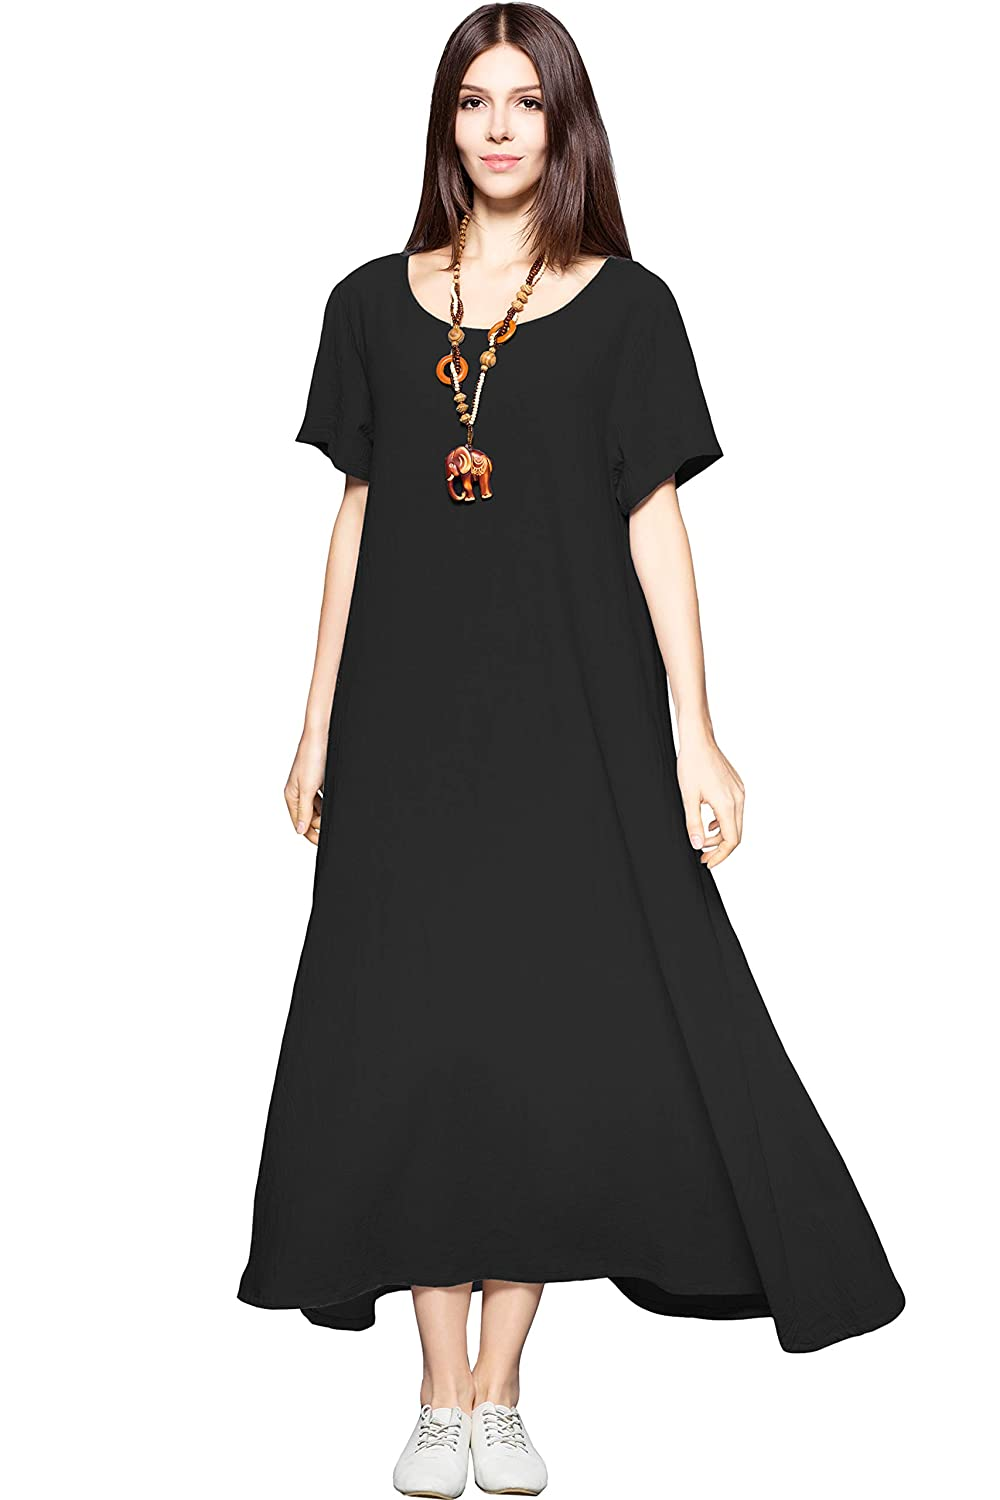 Anysize Side Pockets Linen Cotton Soft Loose Dress Spring Summer Plus Size  Clothing F131A